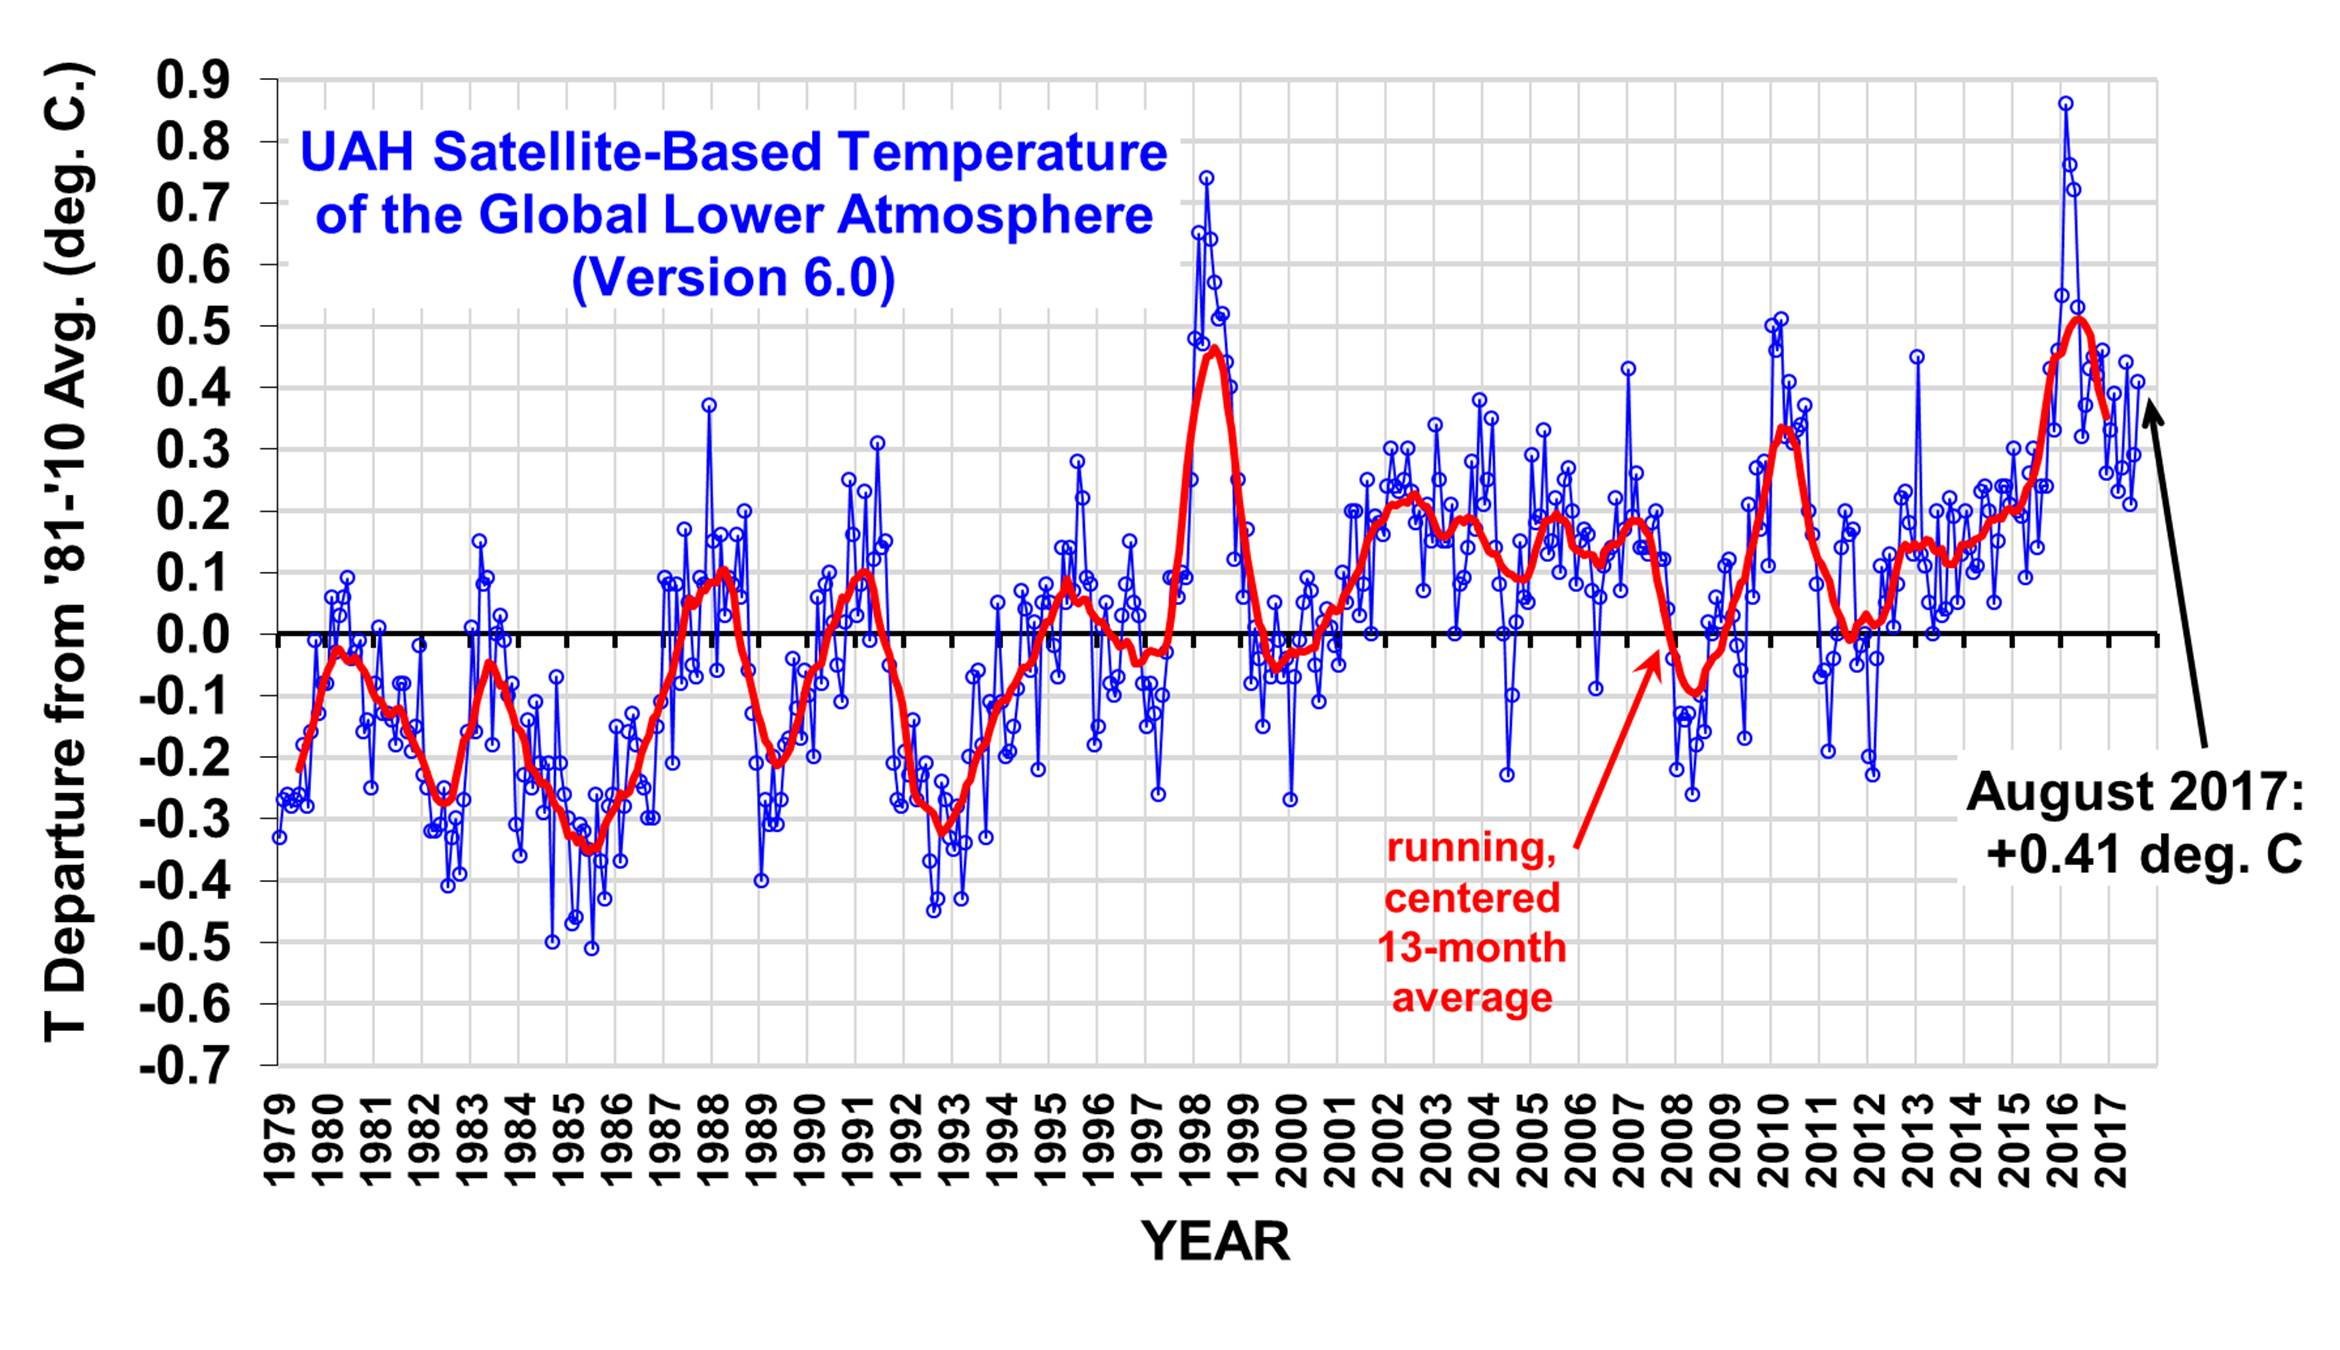 Temperature globali da satellite UAH Agosto 2017